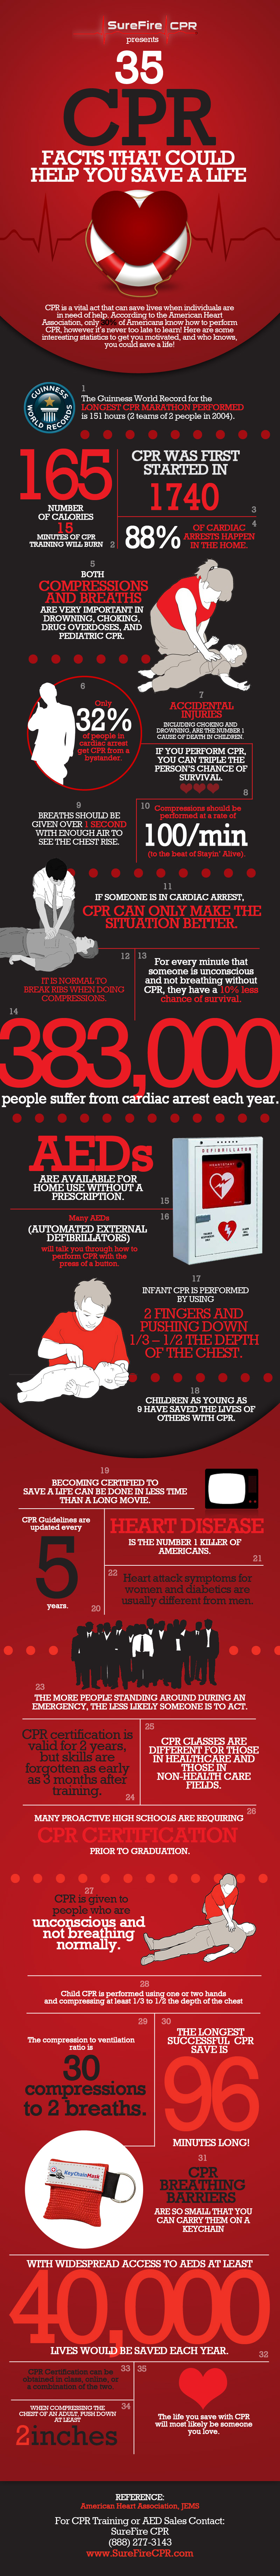 Cpr Research Statistics Cpr Facts From Surefire Cpr Infographic